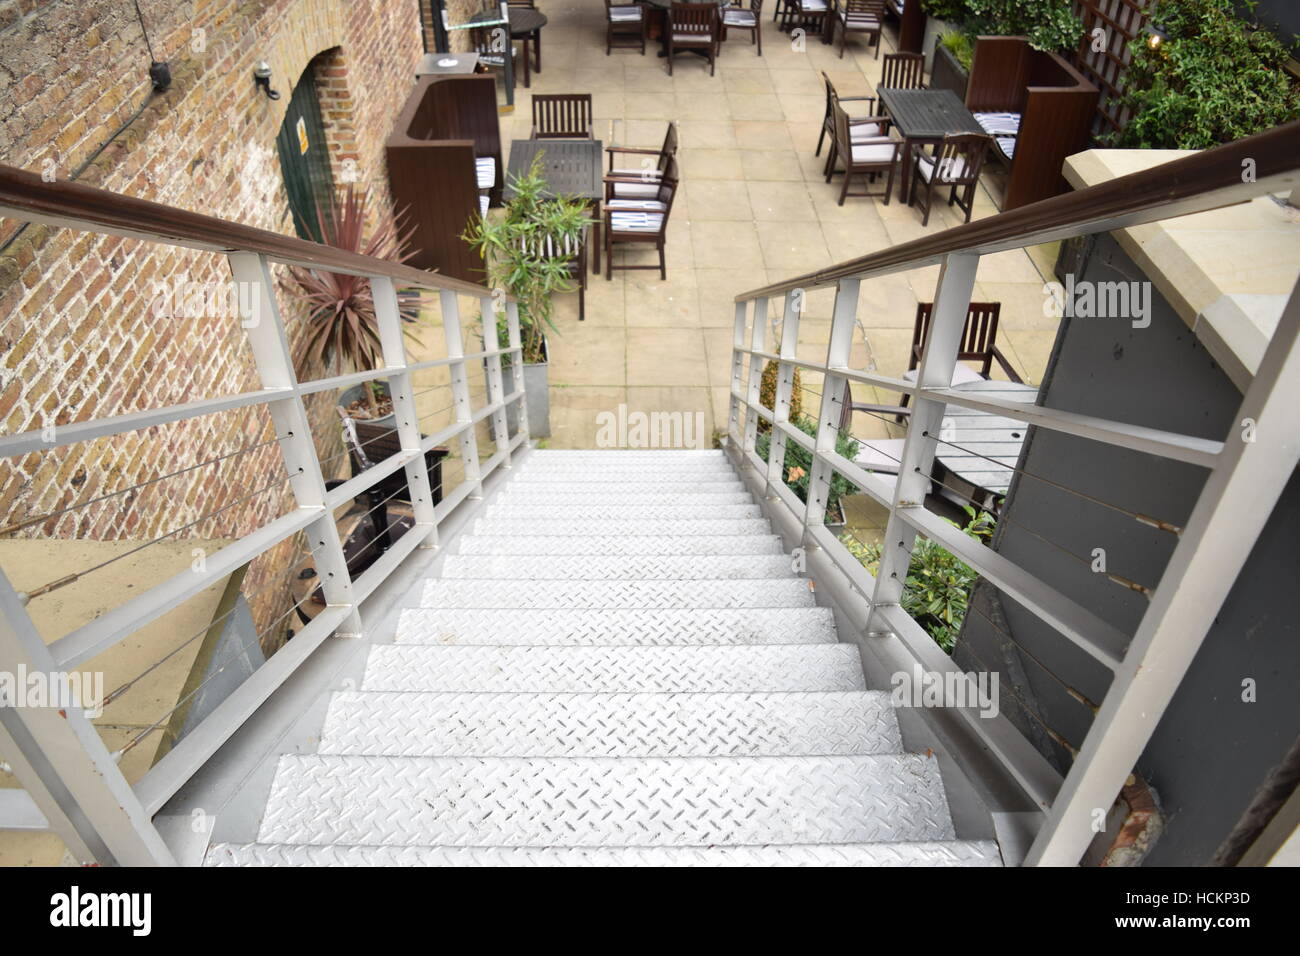 High perspective of stairs going down to meet outdoor restaurant area Stock Photo